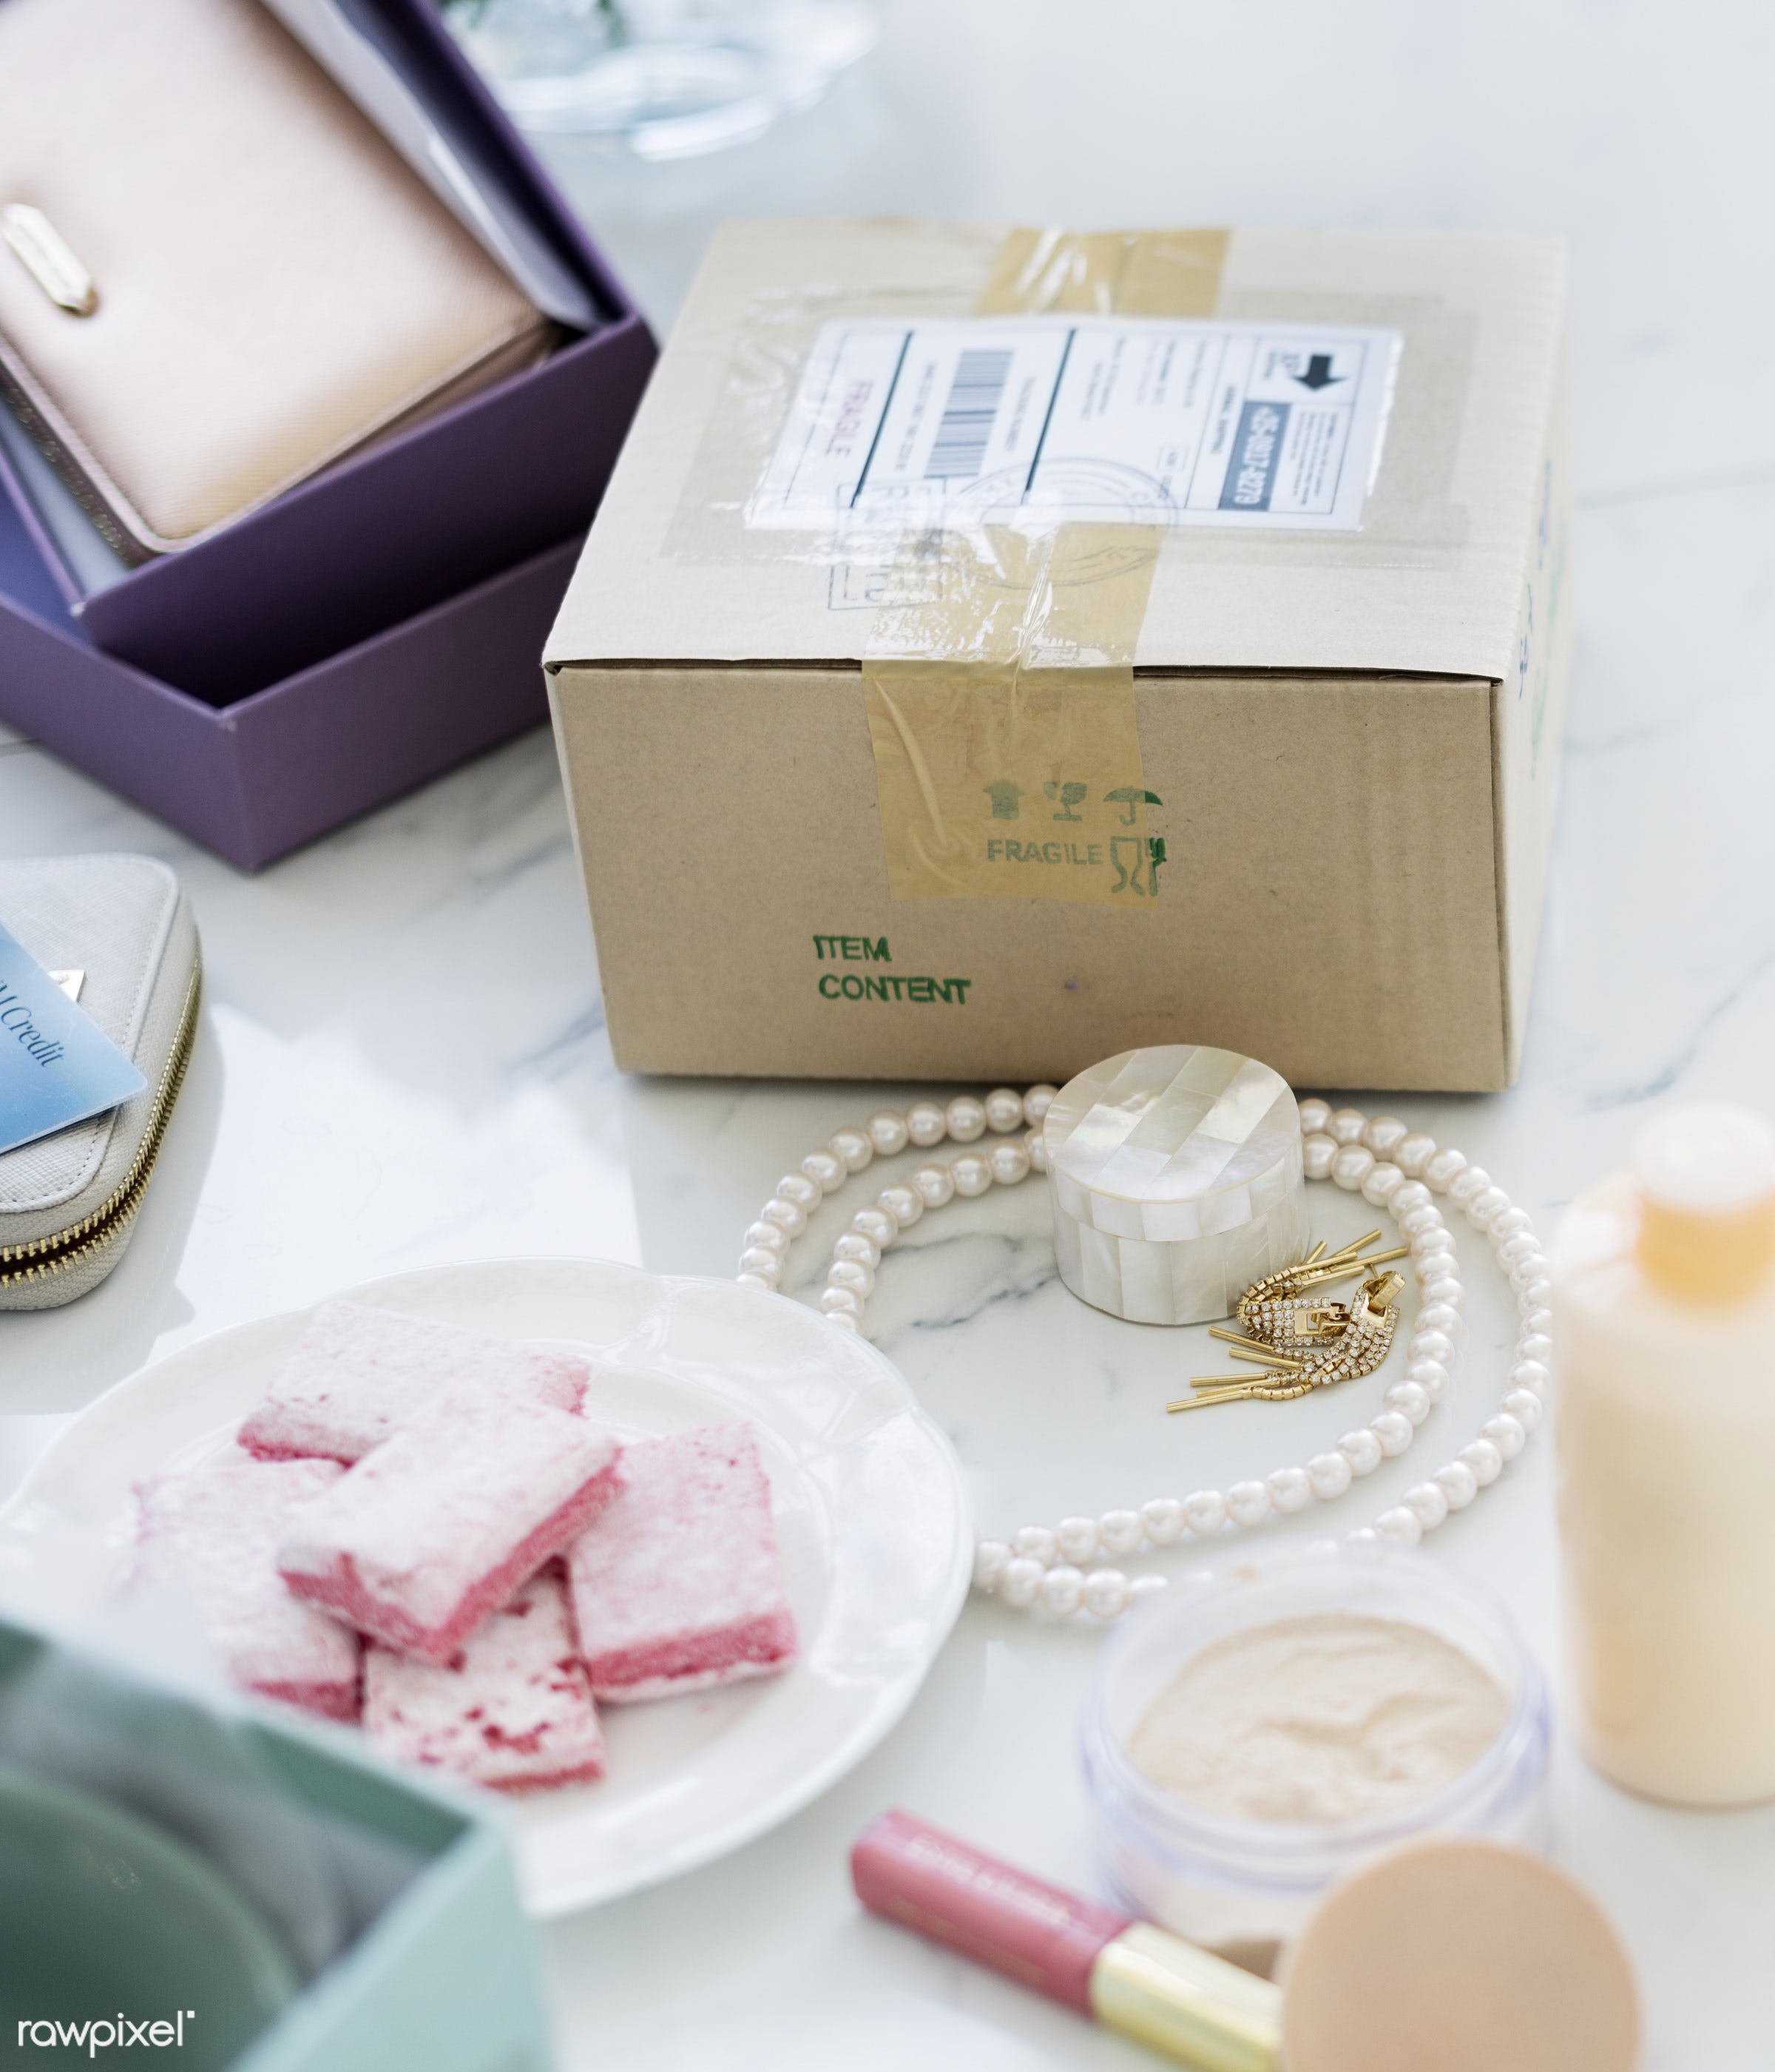 box, cosmetics, cream, dessert, feminine, lotion, makeup, marble table, nobody, objects, package, powder, snack, sweet,...